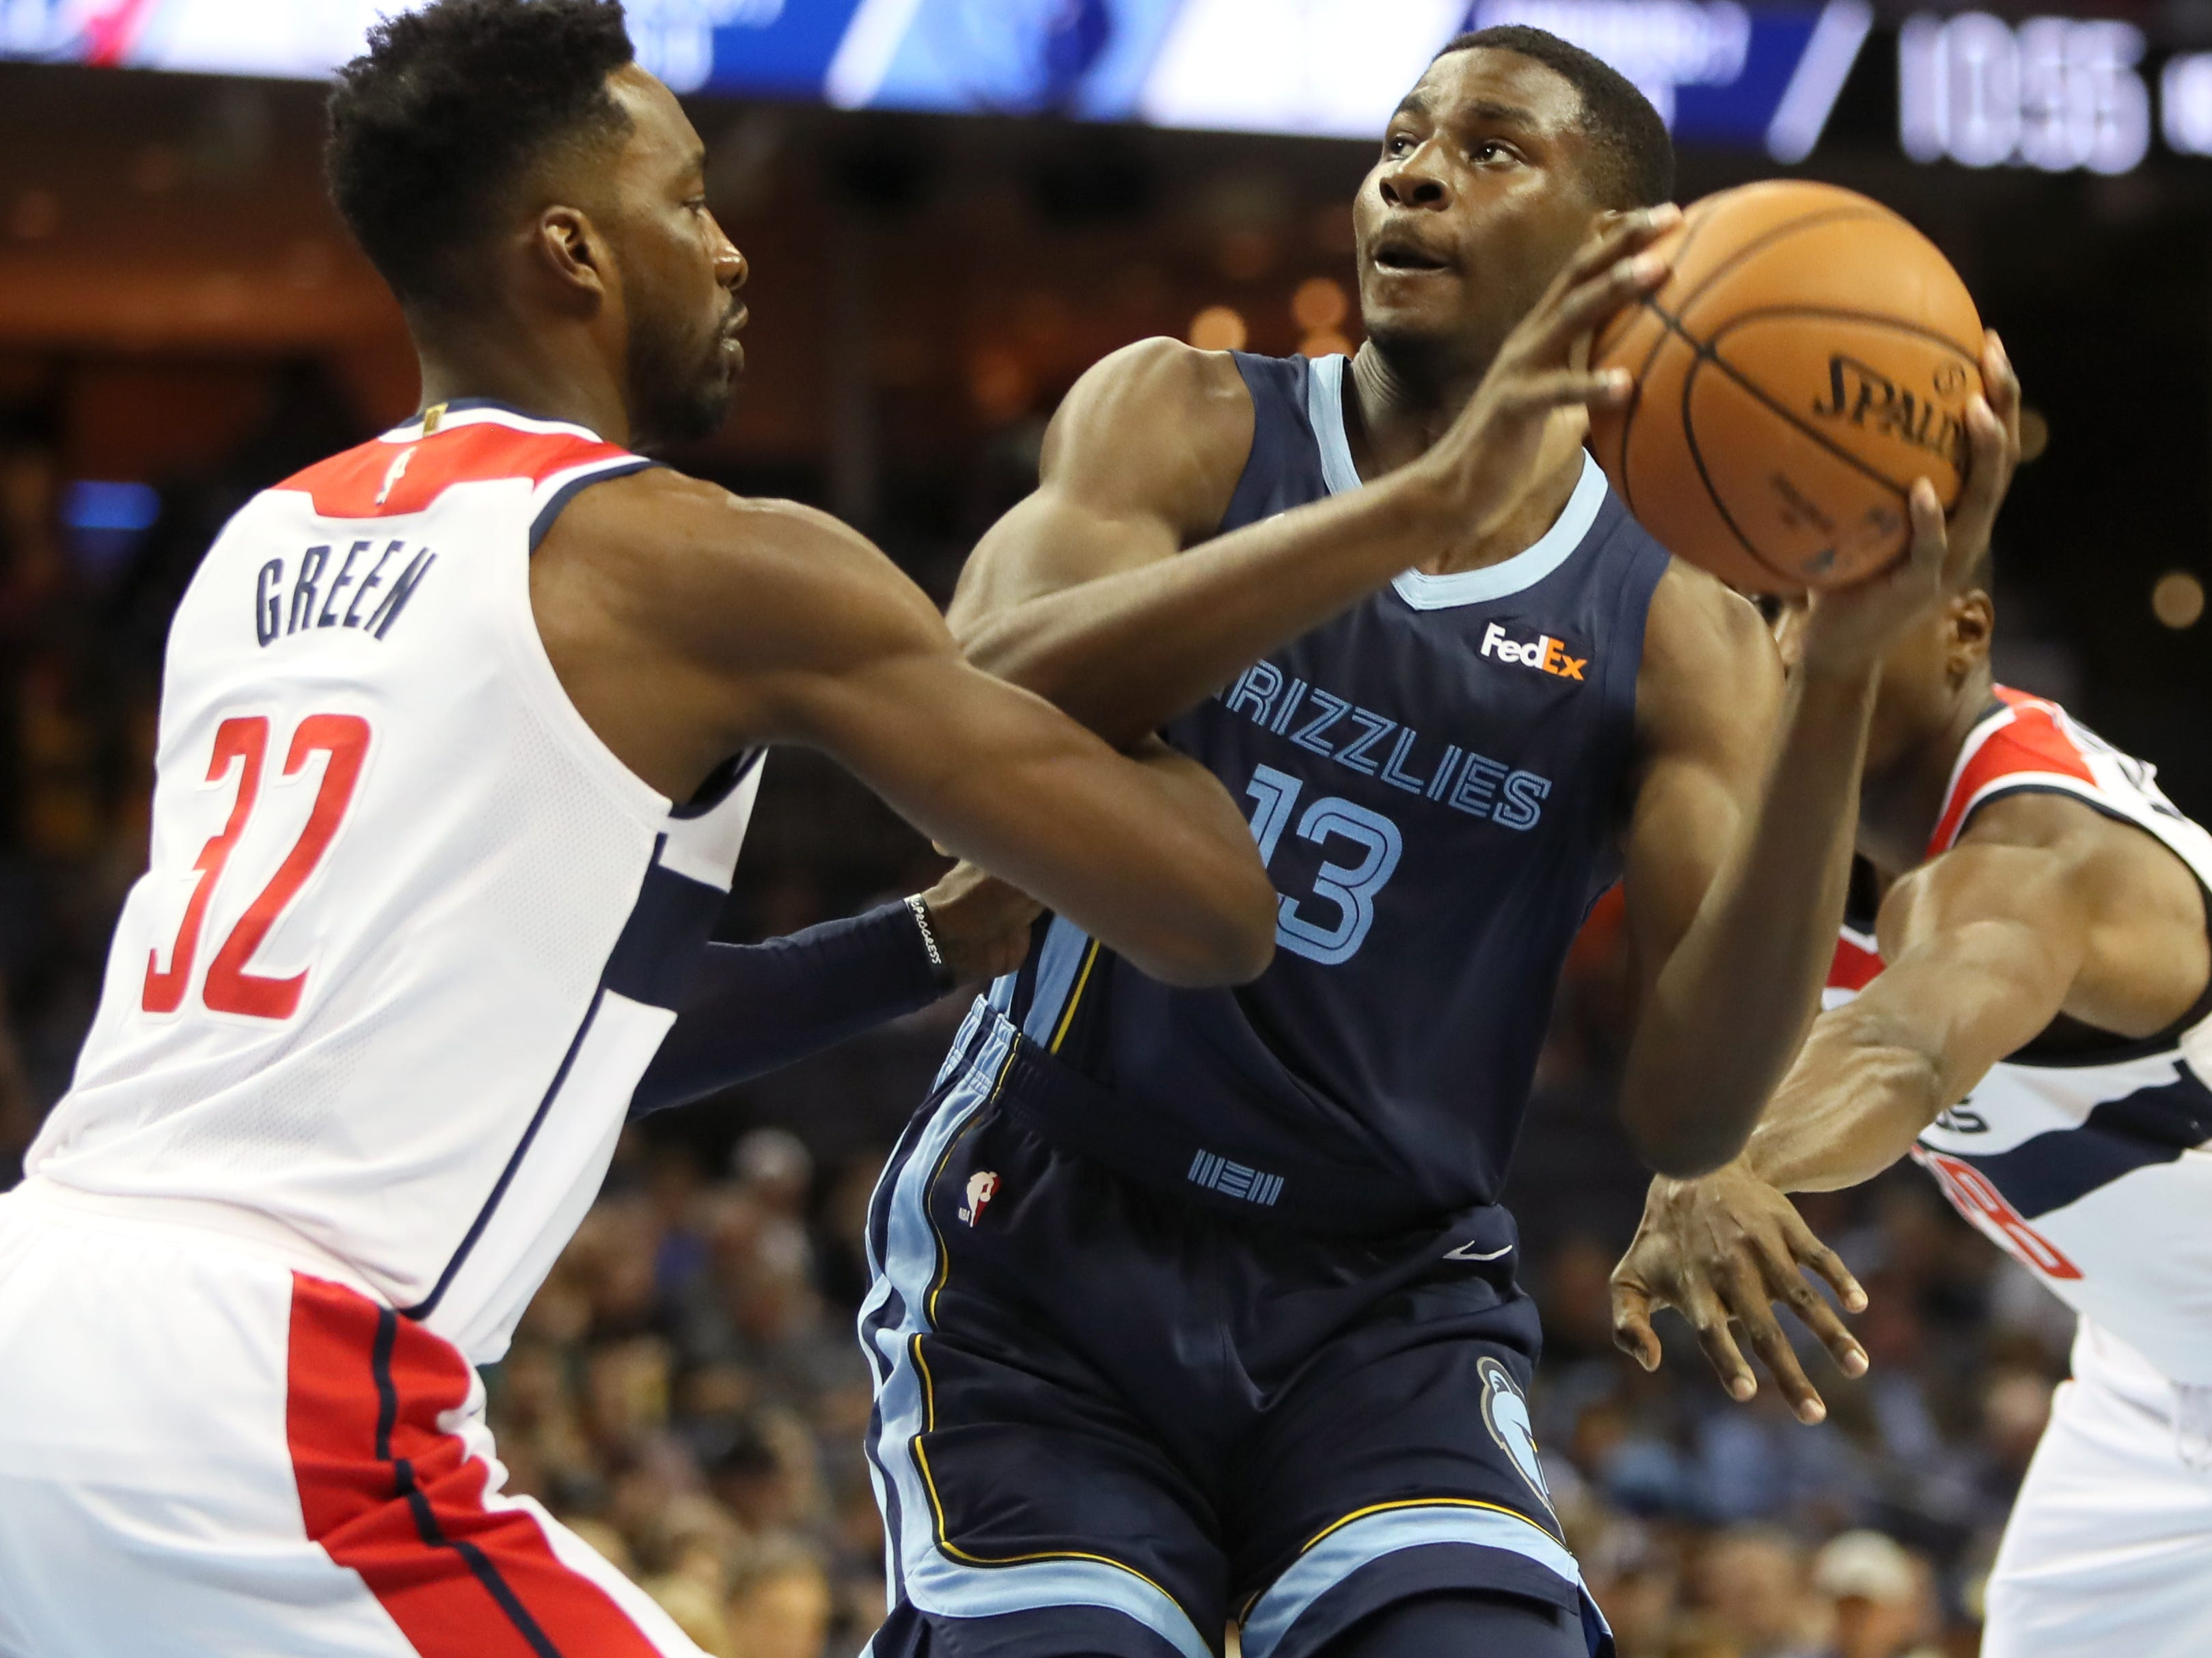 Memphis Grizzlies forward Jaren Jackson Jr. battles against Washington Wizards forward Jeff Green, left and Ian Mahinmi to get a shot up during their game at the FedExForum on Tuesday, Oct 30, 2018.